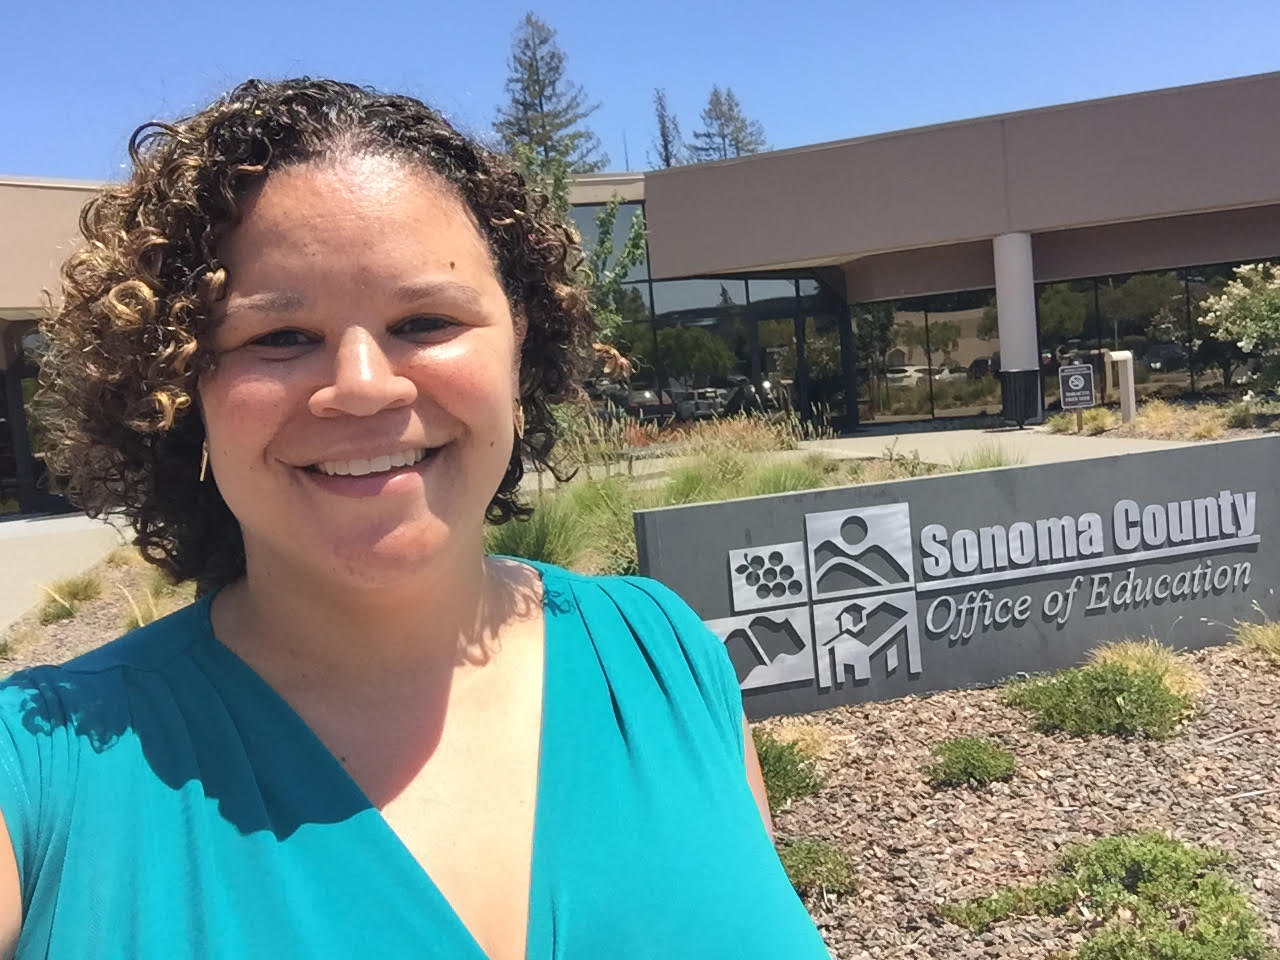 Kerry Rego at Sonoma County Office of Education SCOE